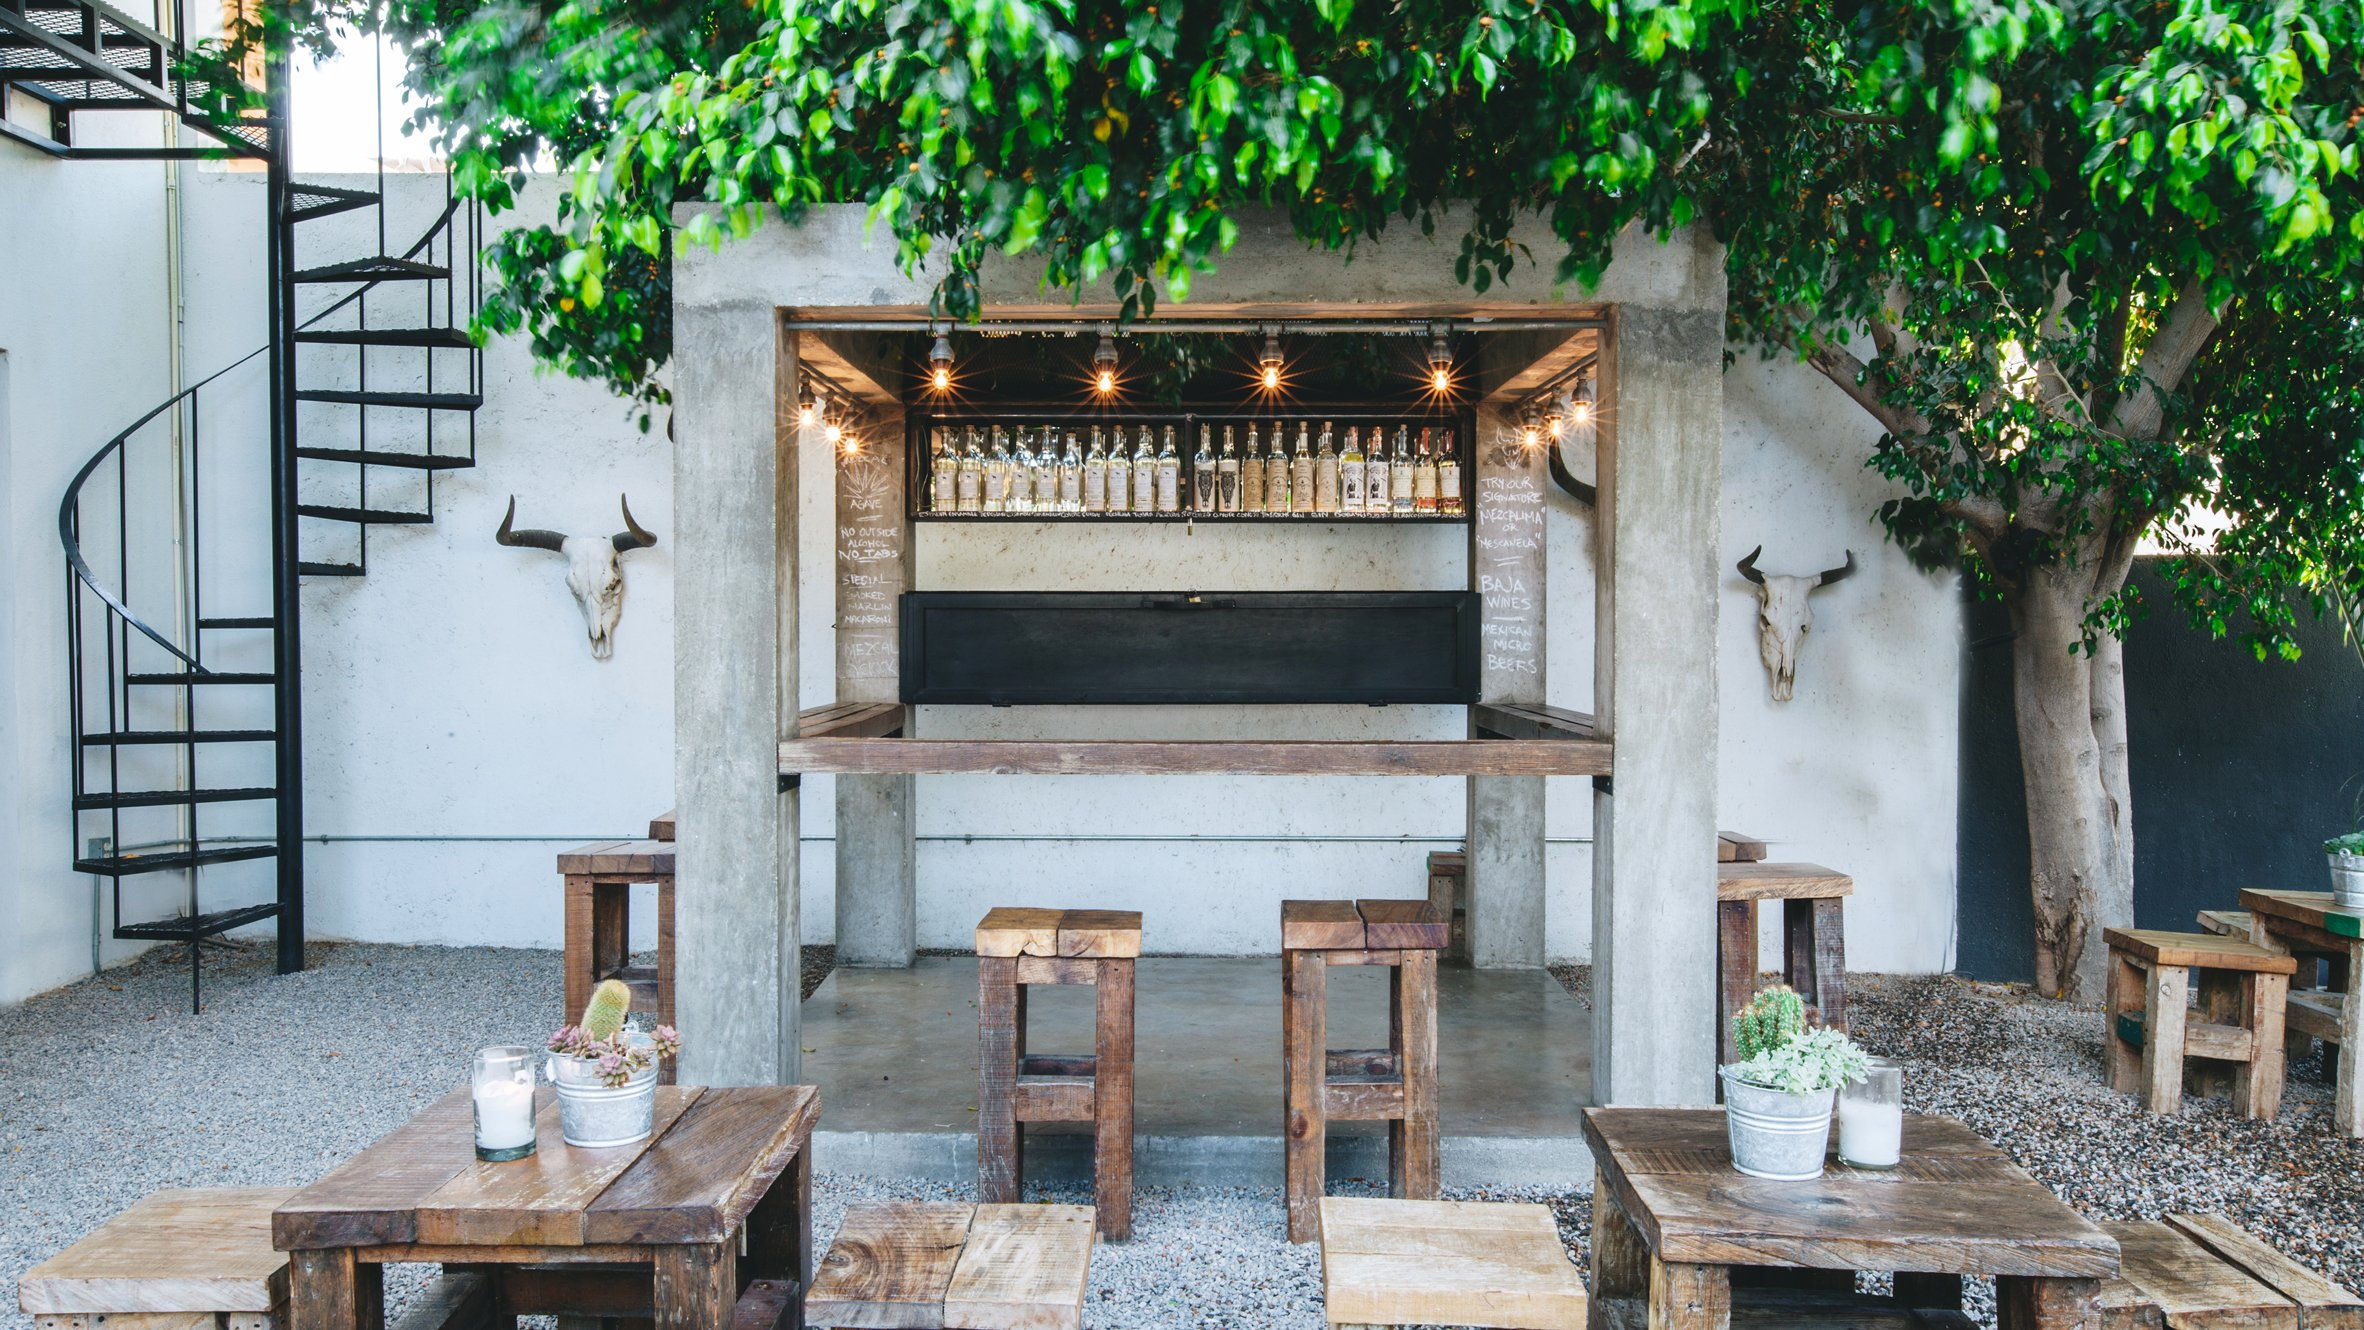 Boutique Hotel In Cabo Offers Design Store Food Carts And Mezcal Bar